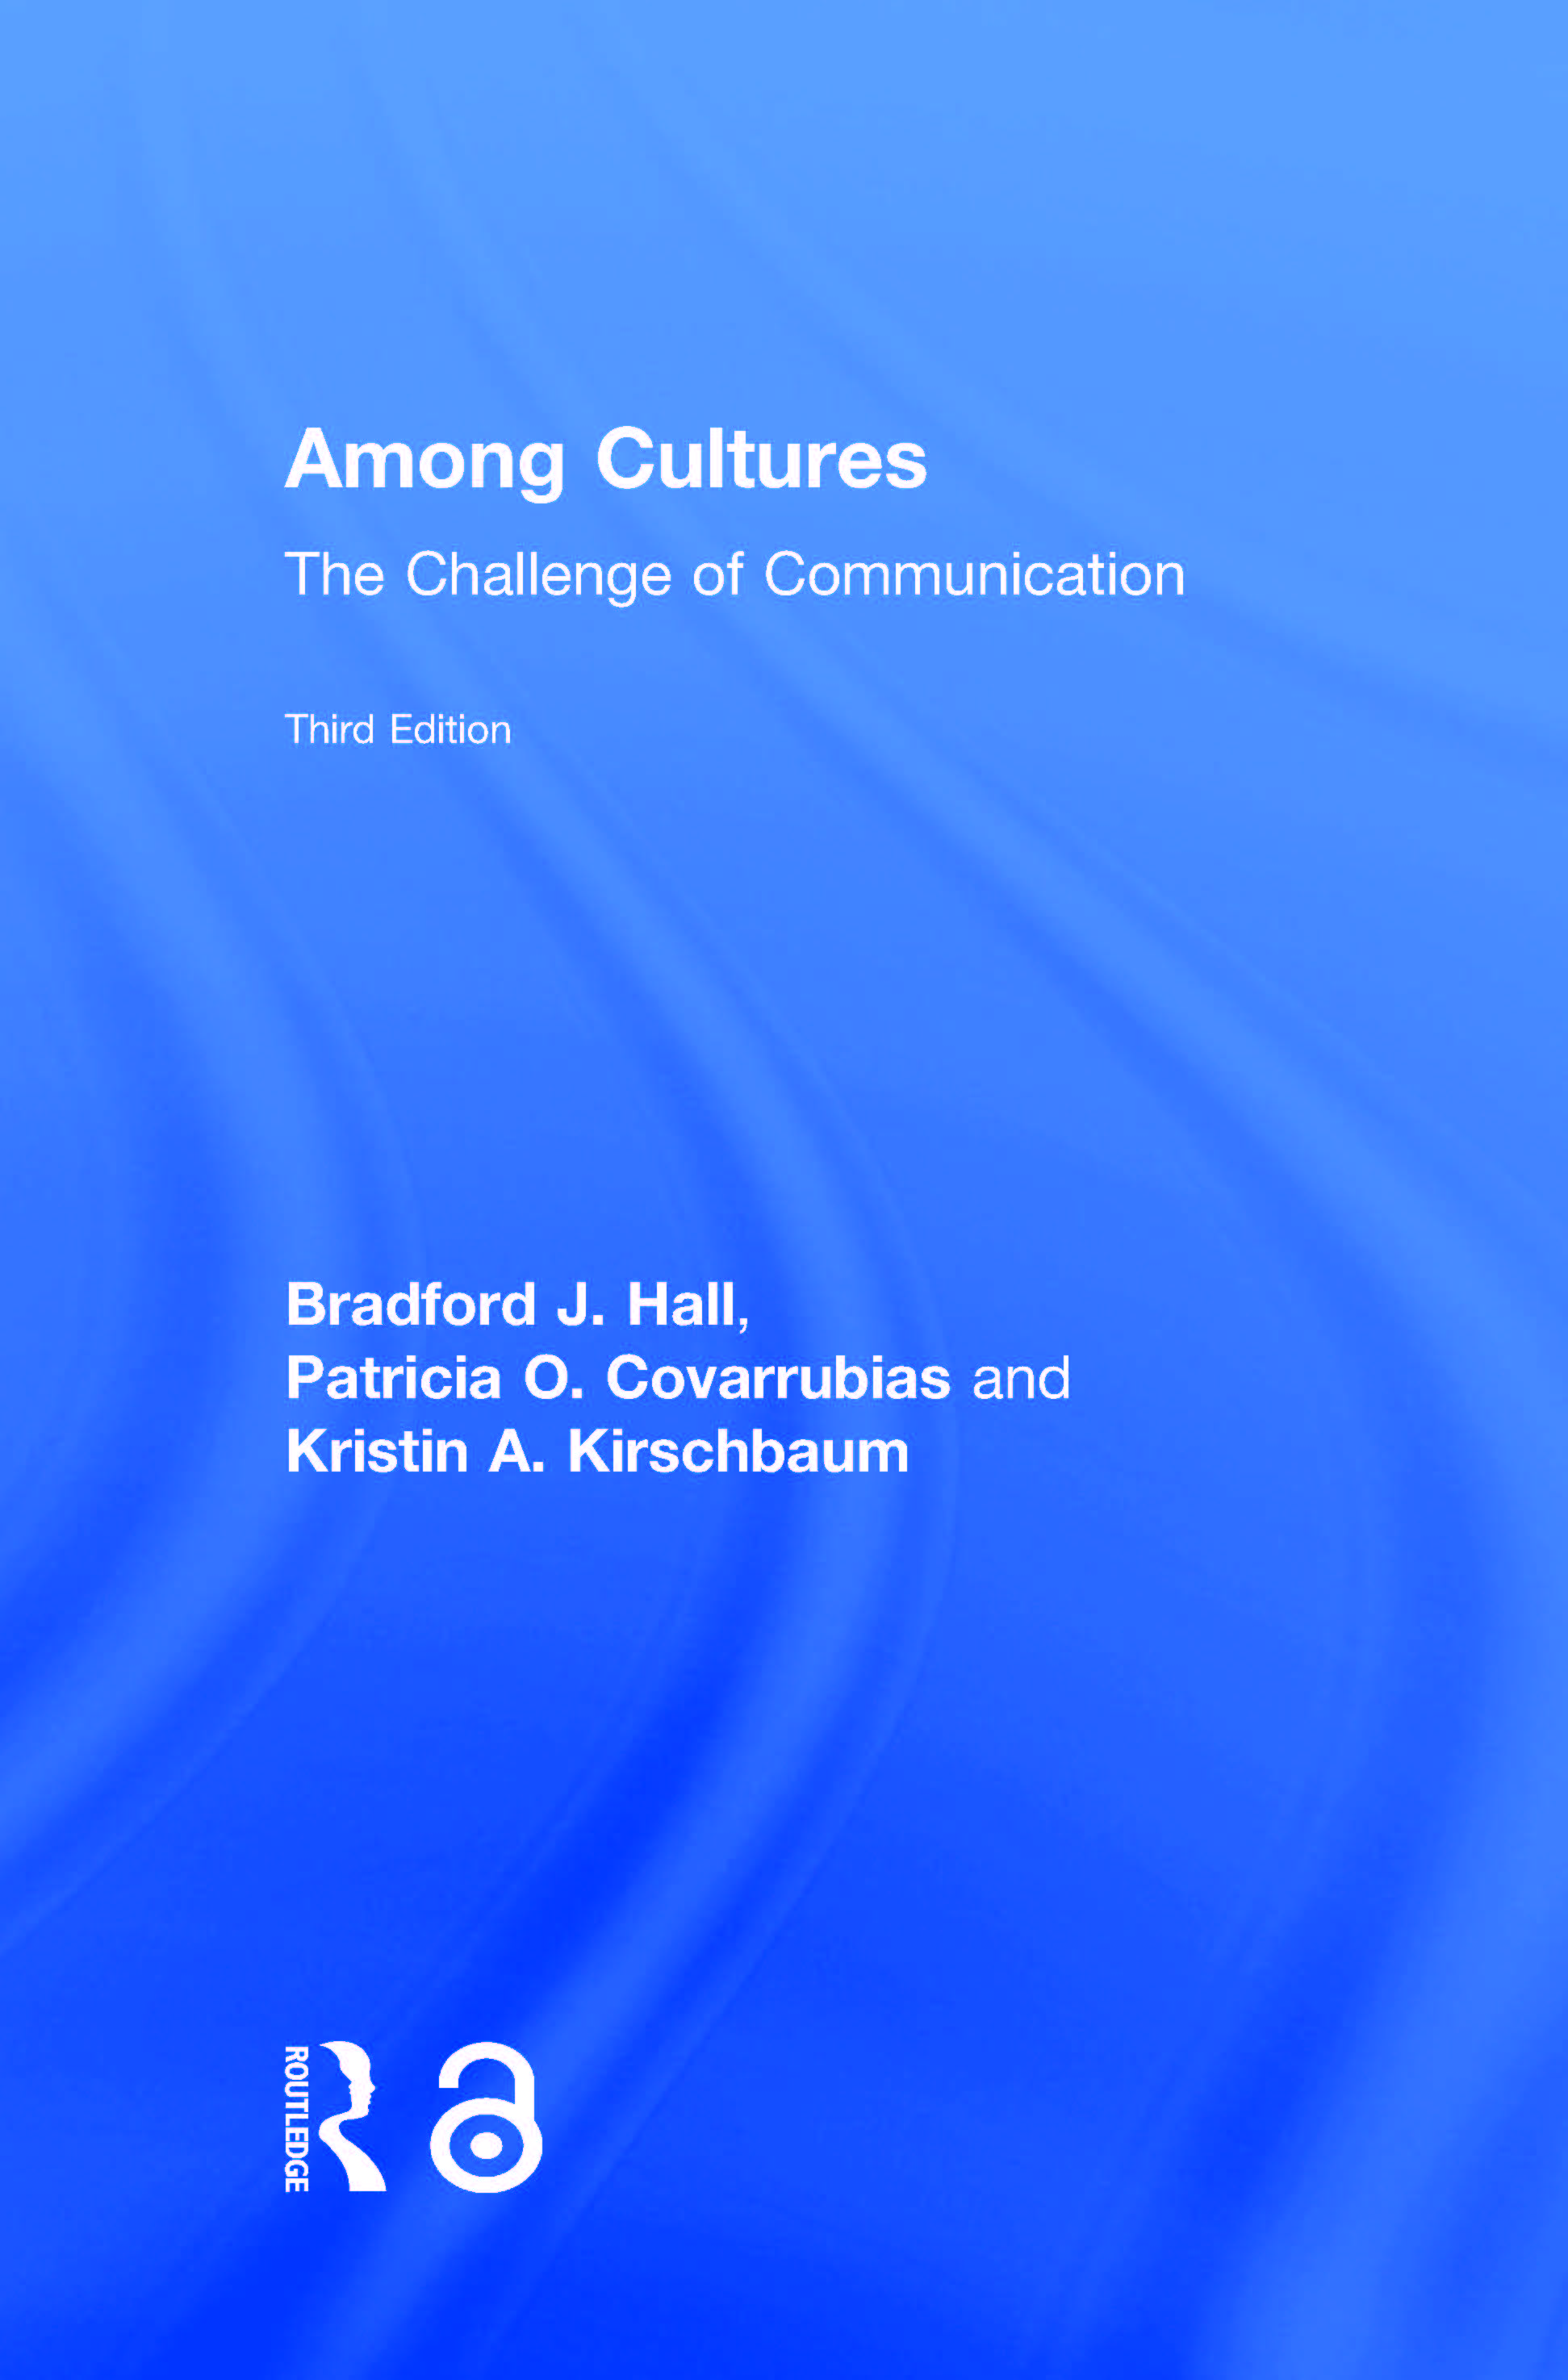 Among Cultures: The Challenge of Communication book cover